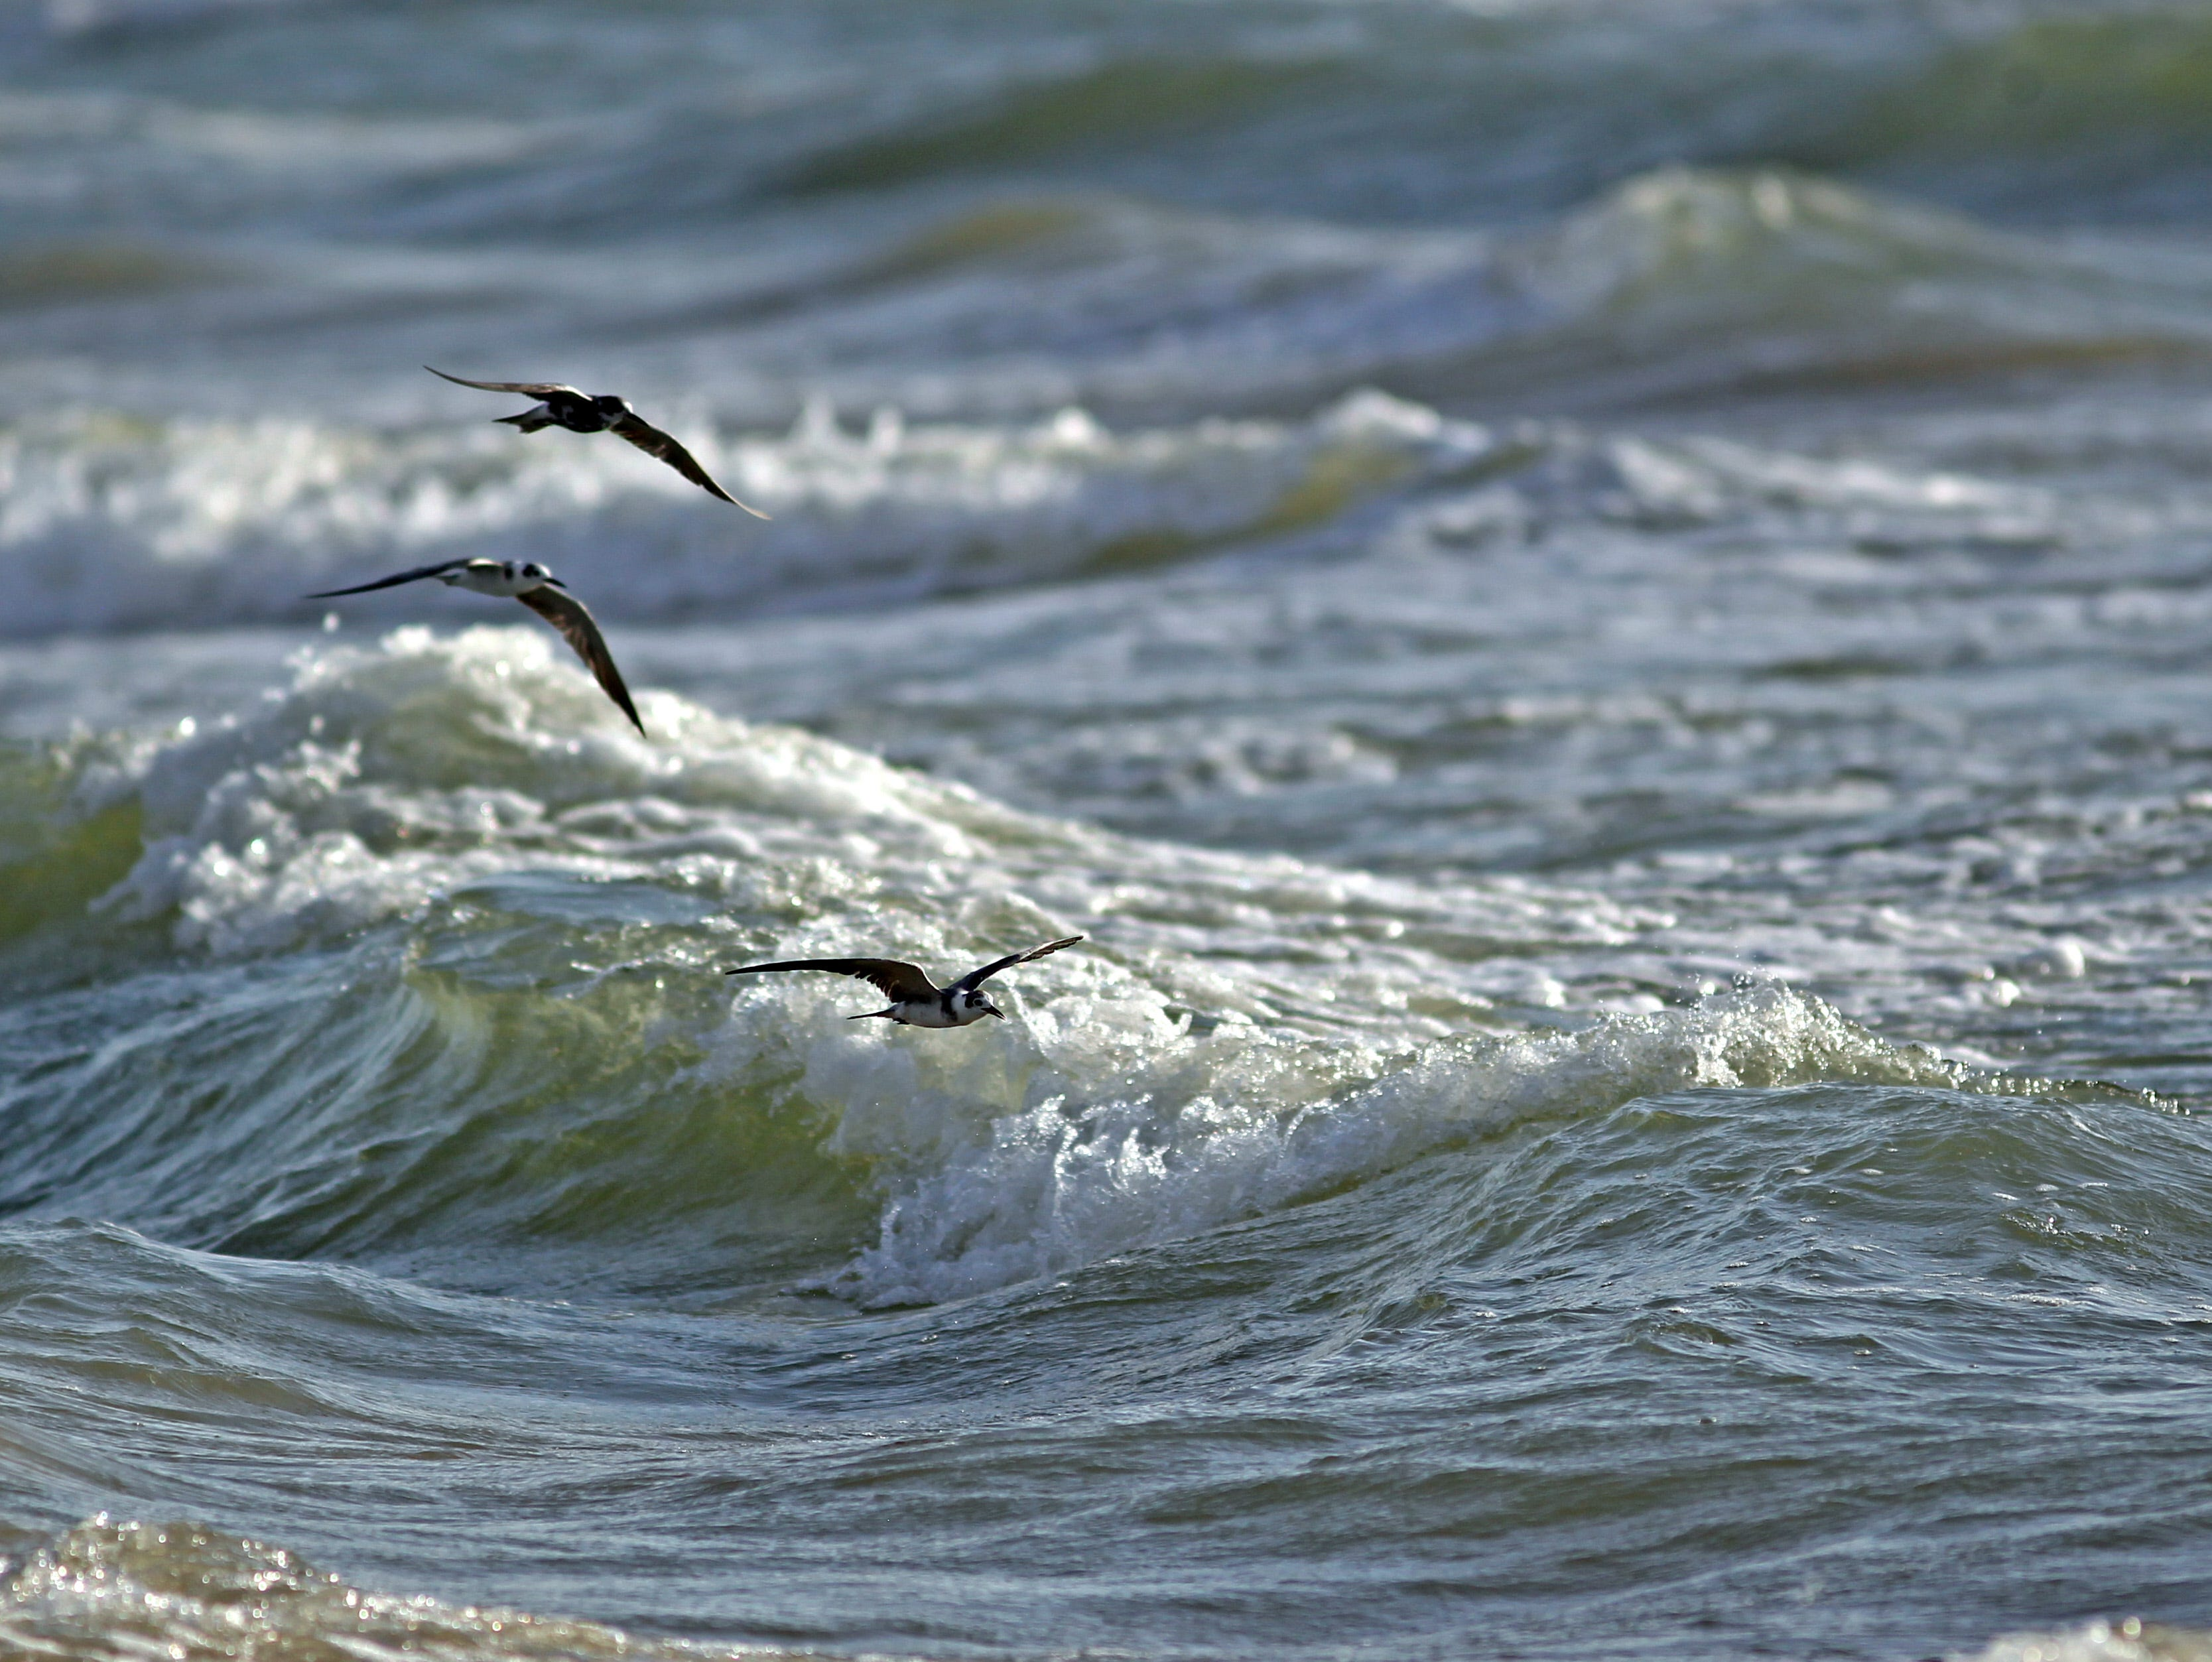 These are black terns, a migratory species that signals the start of the dusky anchovy run along the beach, which triggers a feeding frenzy among predator fish.